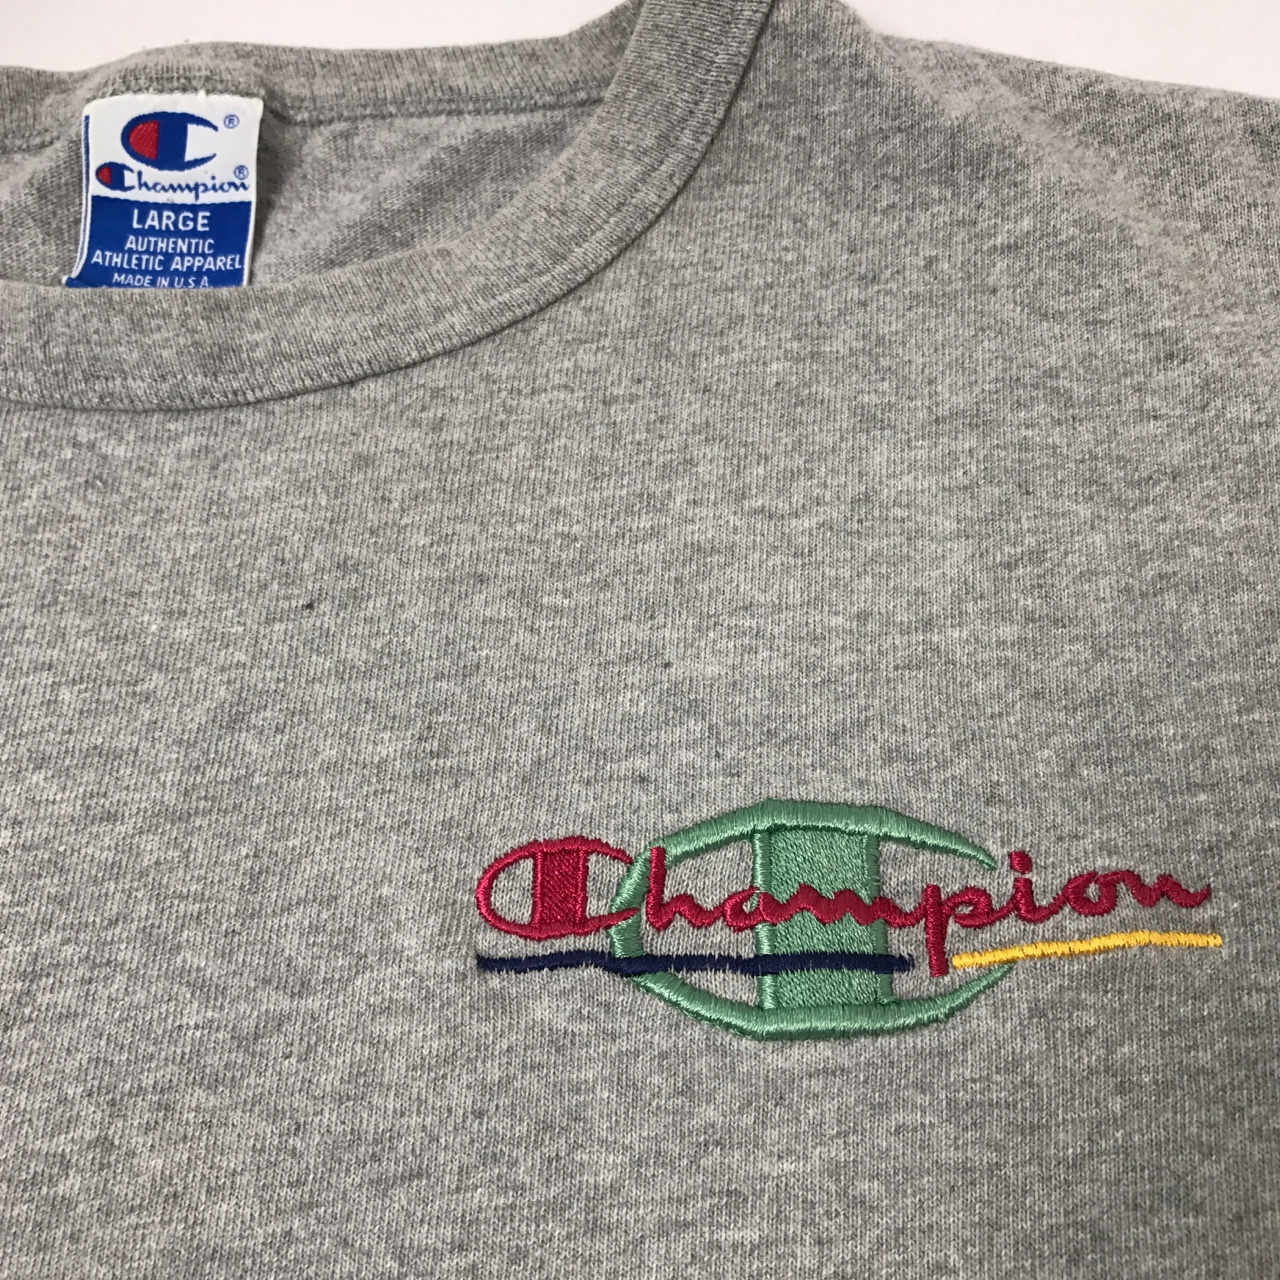 huge discount great quality classic style Vintage 90's Champion color embroidered logo tee... - Depop